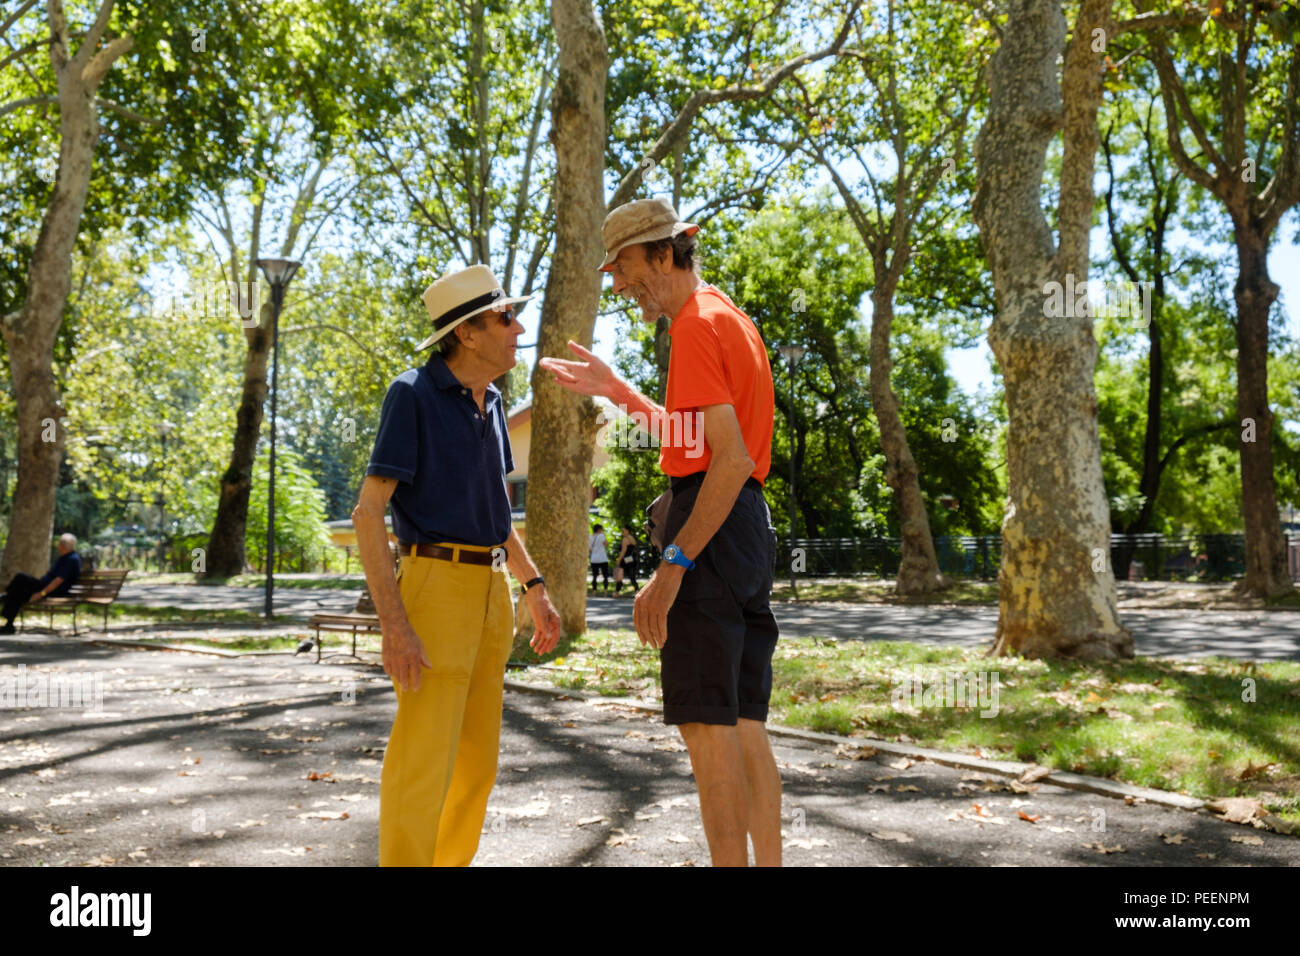 Colourfully dressed italian men both with straw hats meeting and greeting each other on a summers morning at the park. Piacenza, Italy. Stock Photo